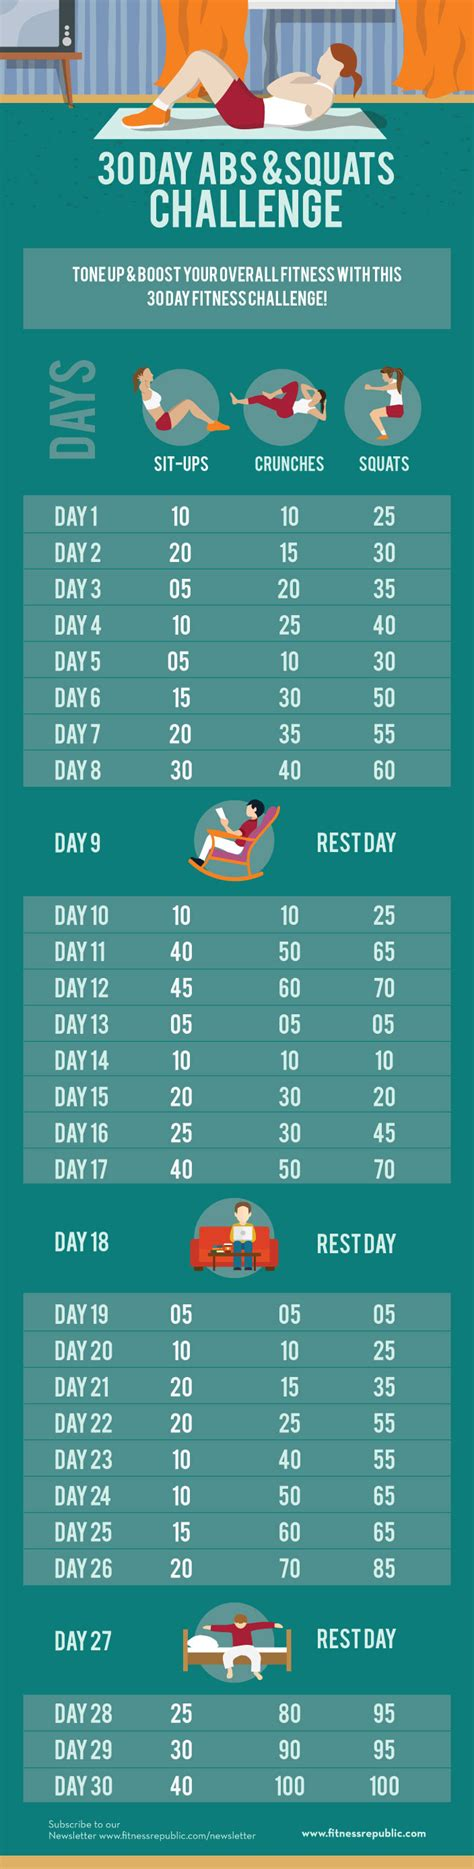 squat challenge and ab challenge 30 day abs and squats challenge fitness republic